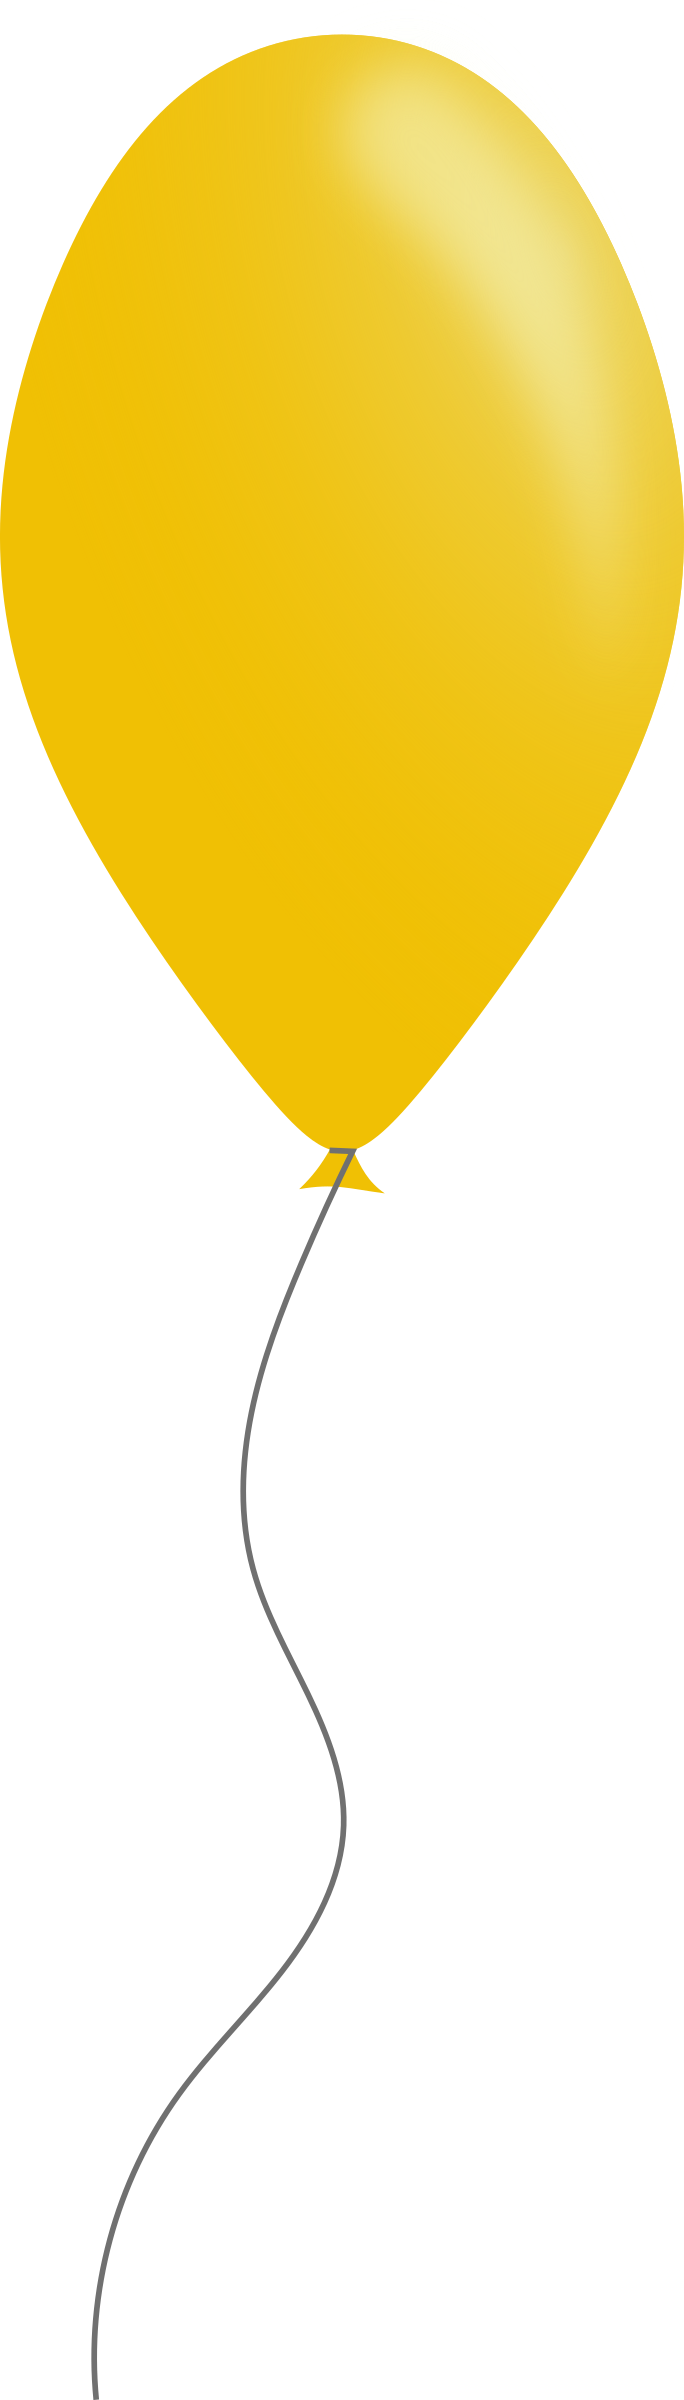 Yellow balloons png. Free balloon cliparts download